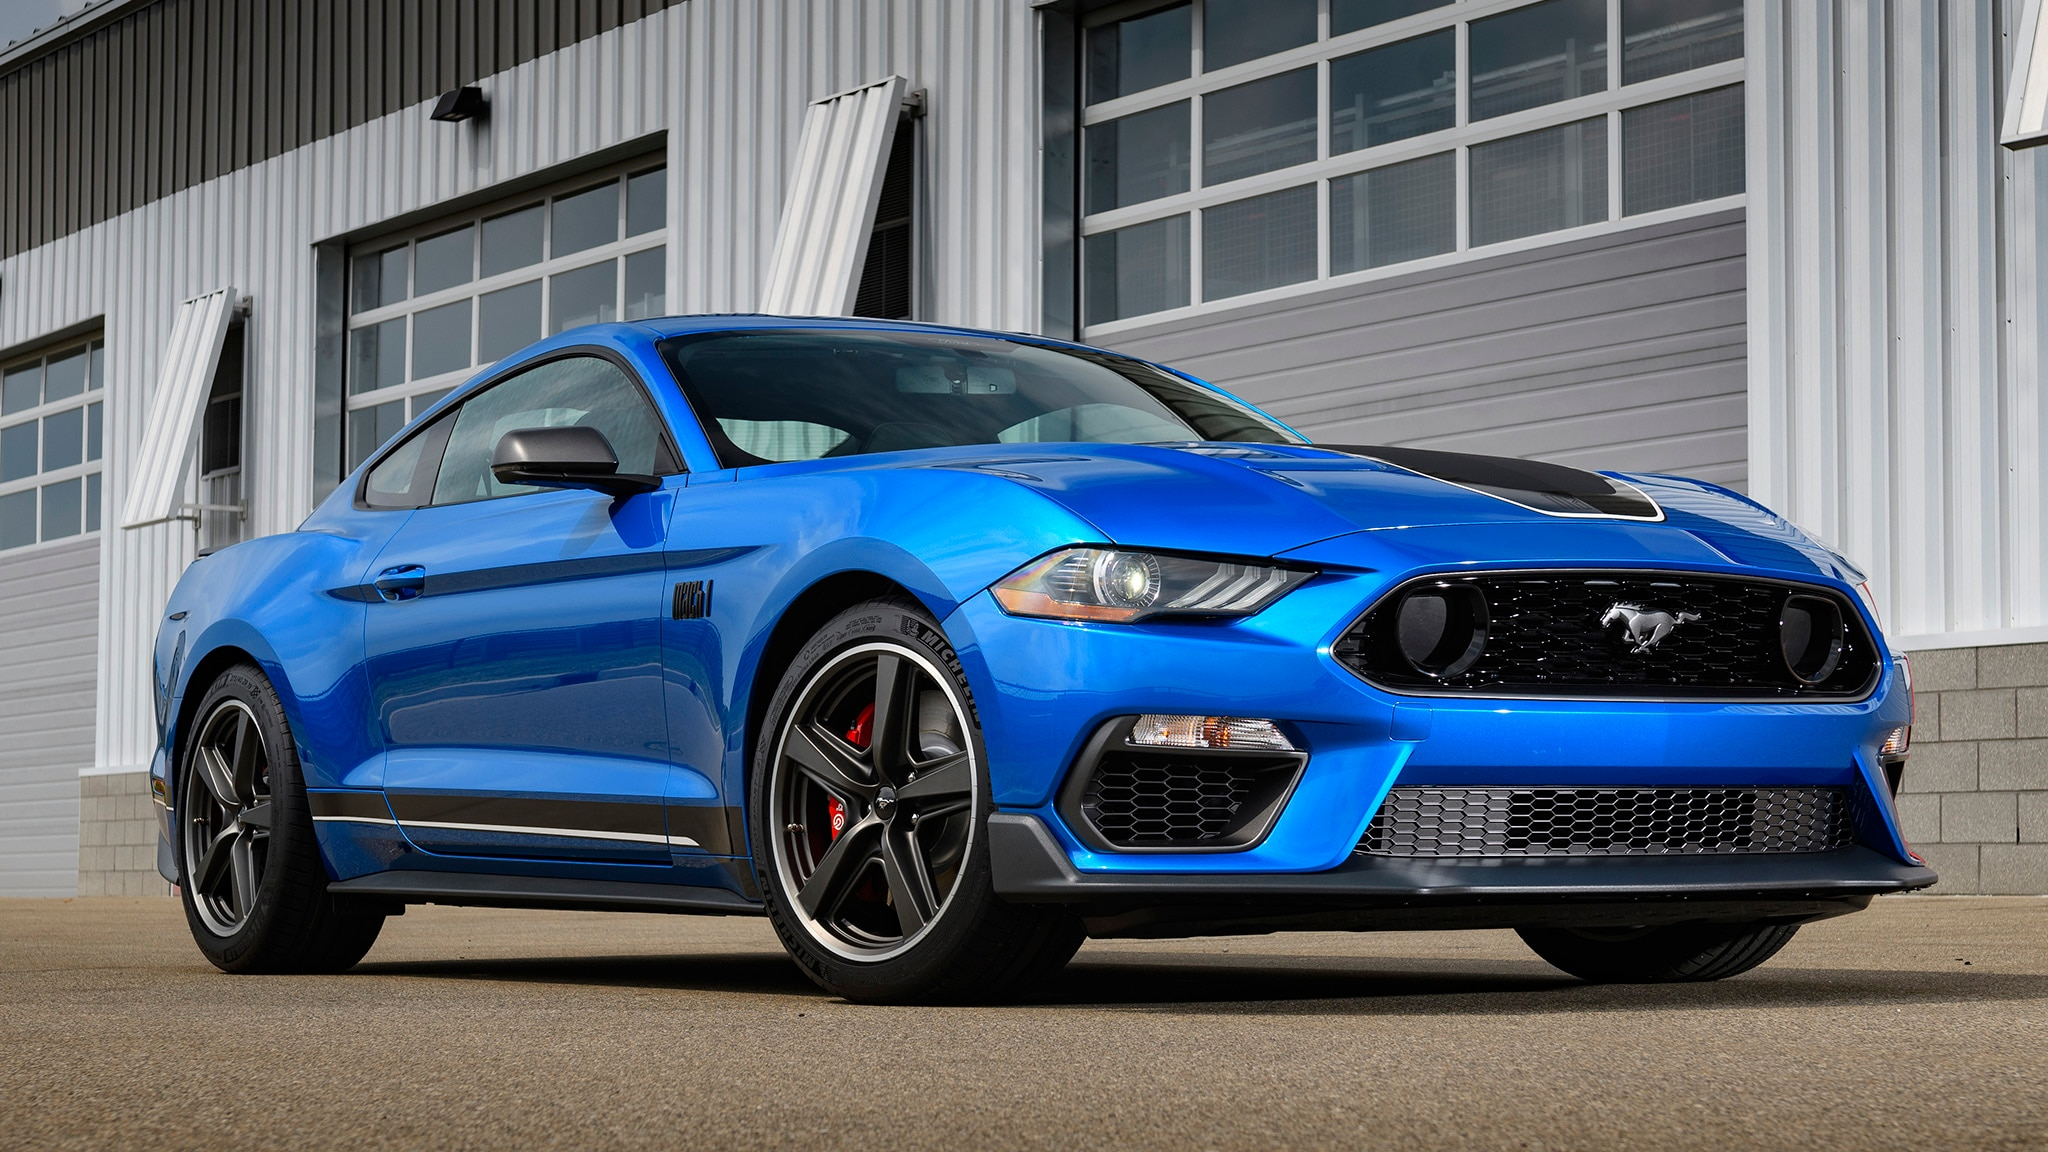 Cars Com Chicago >> 2021 Ford Mustang Mach E: A Look at Its Retro Design Cues